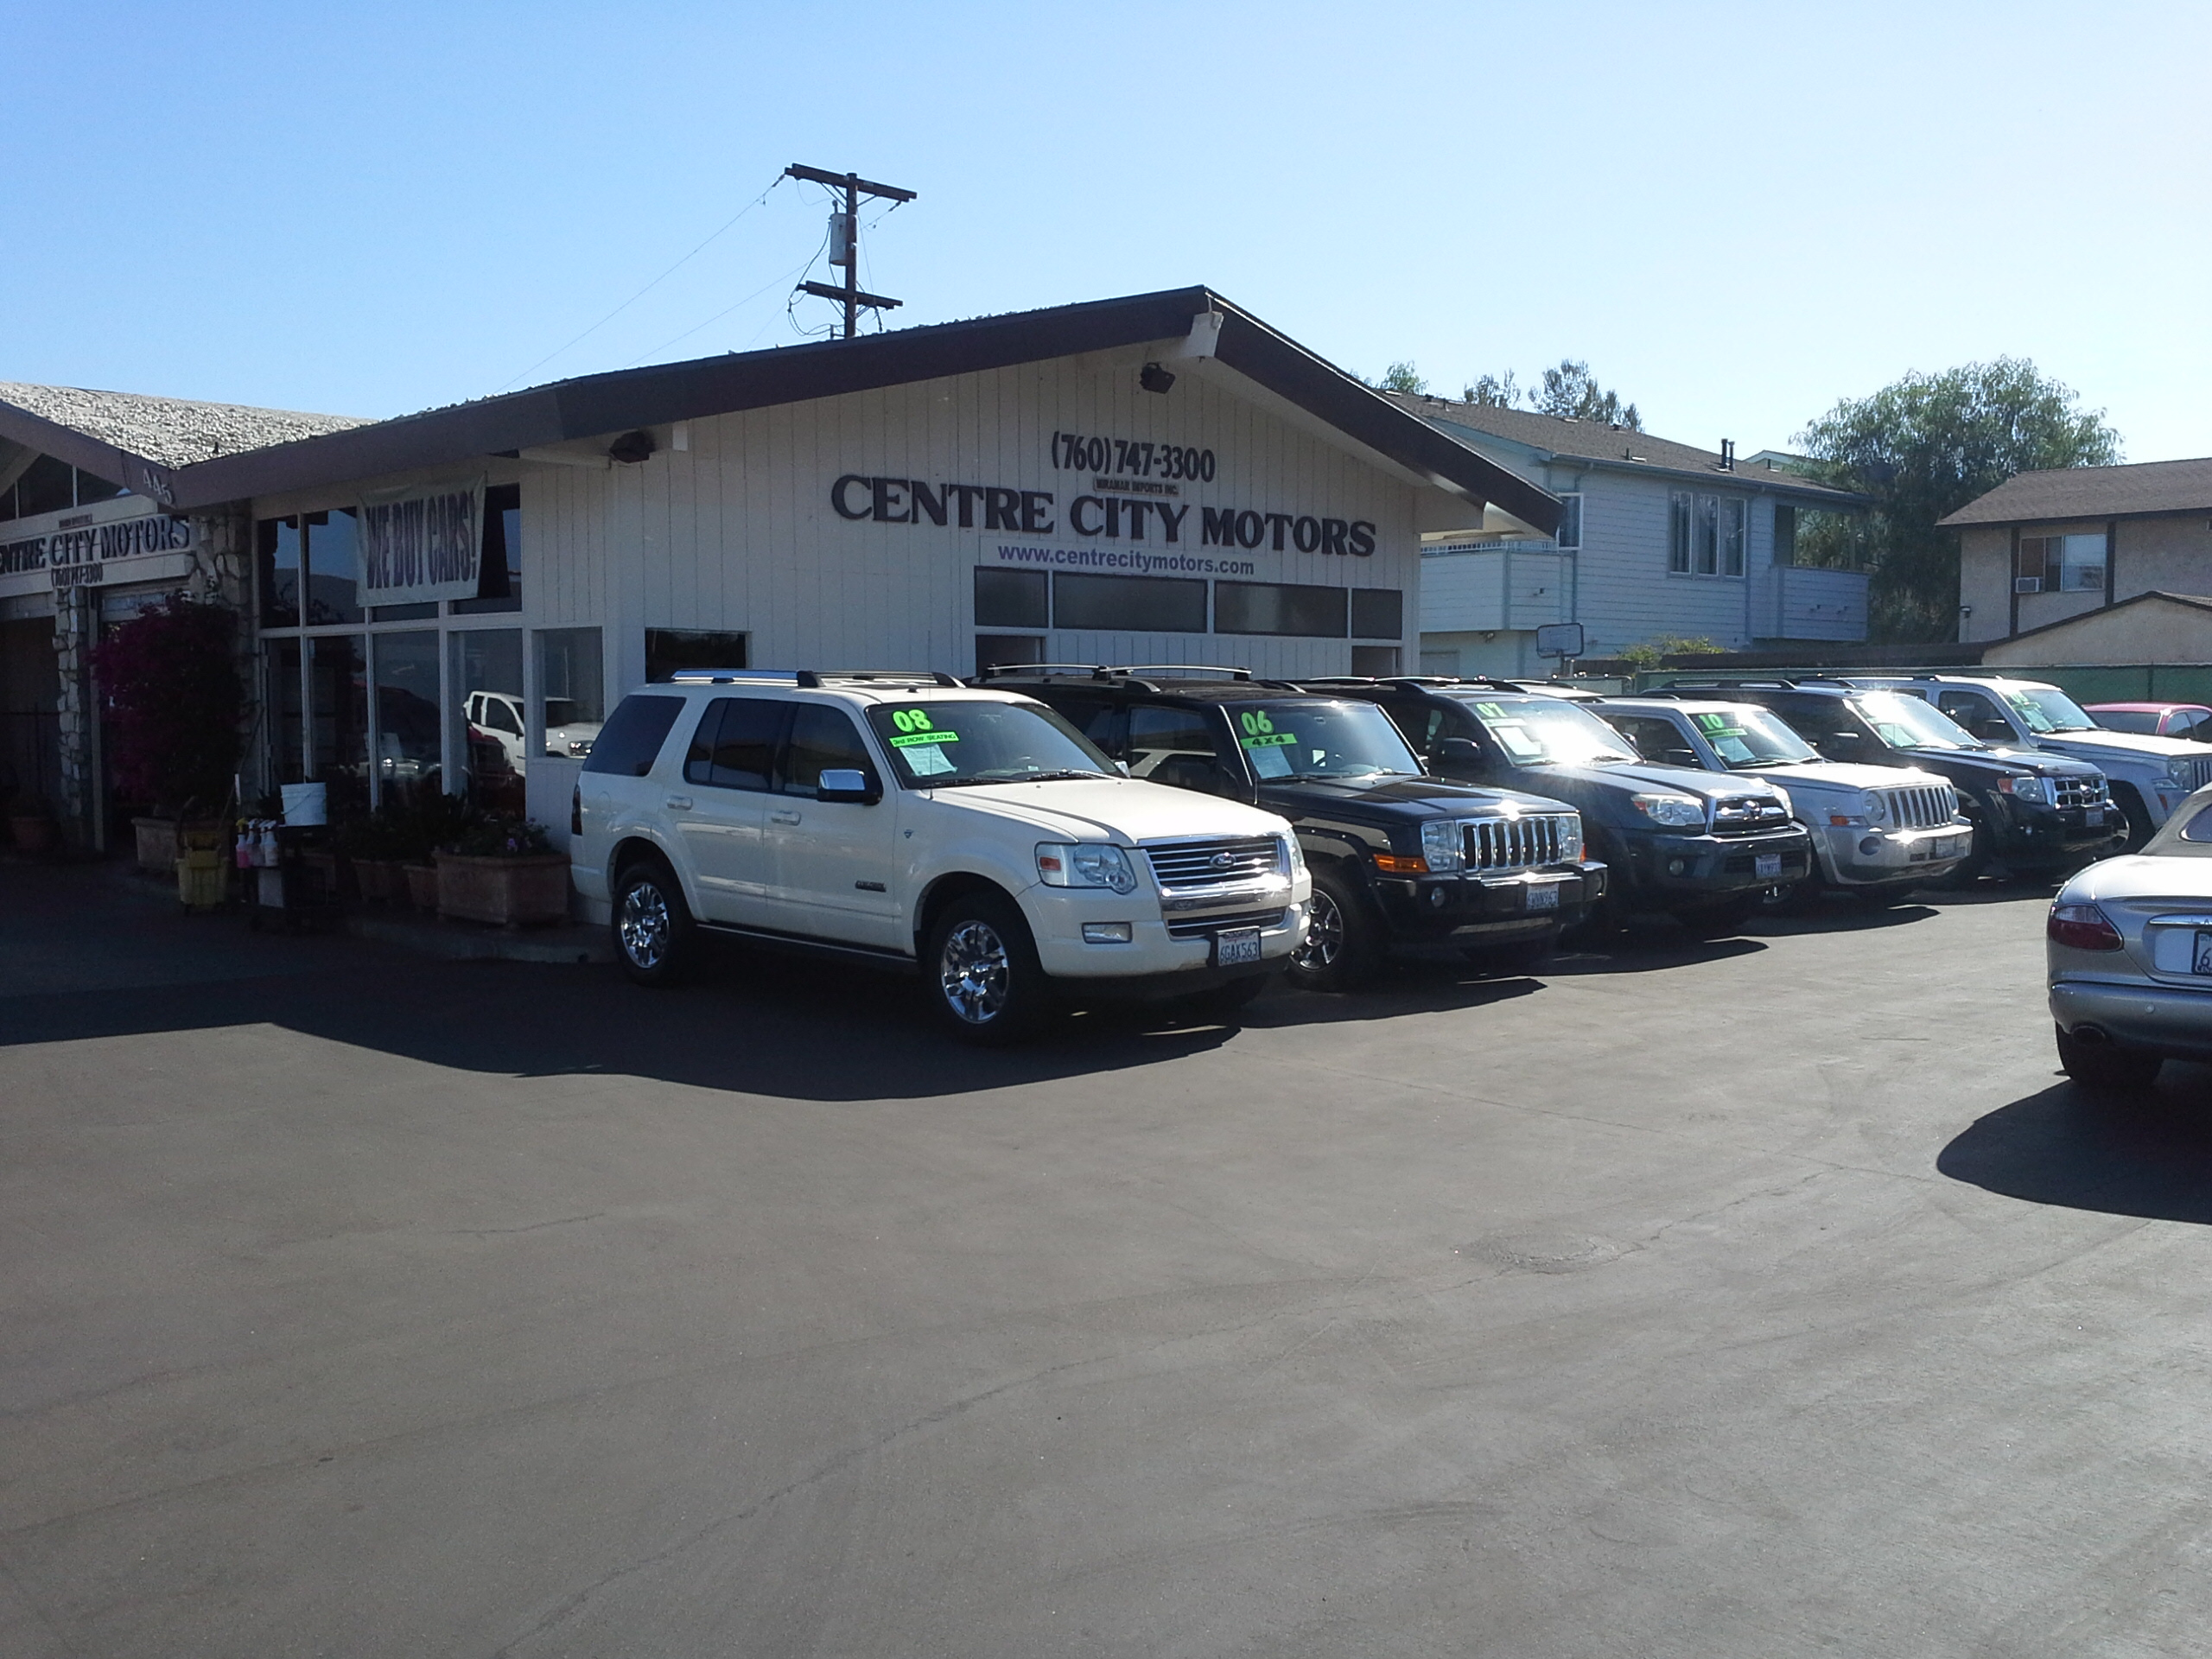 centre city motors in escondido ca 92025